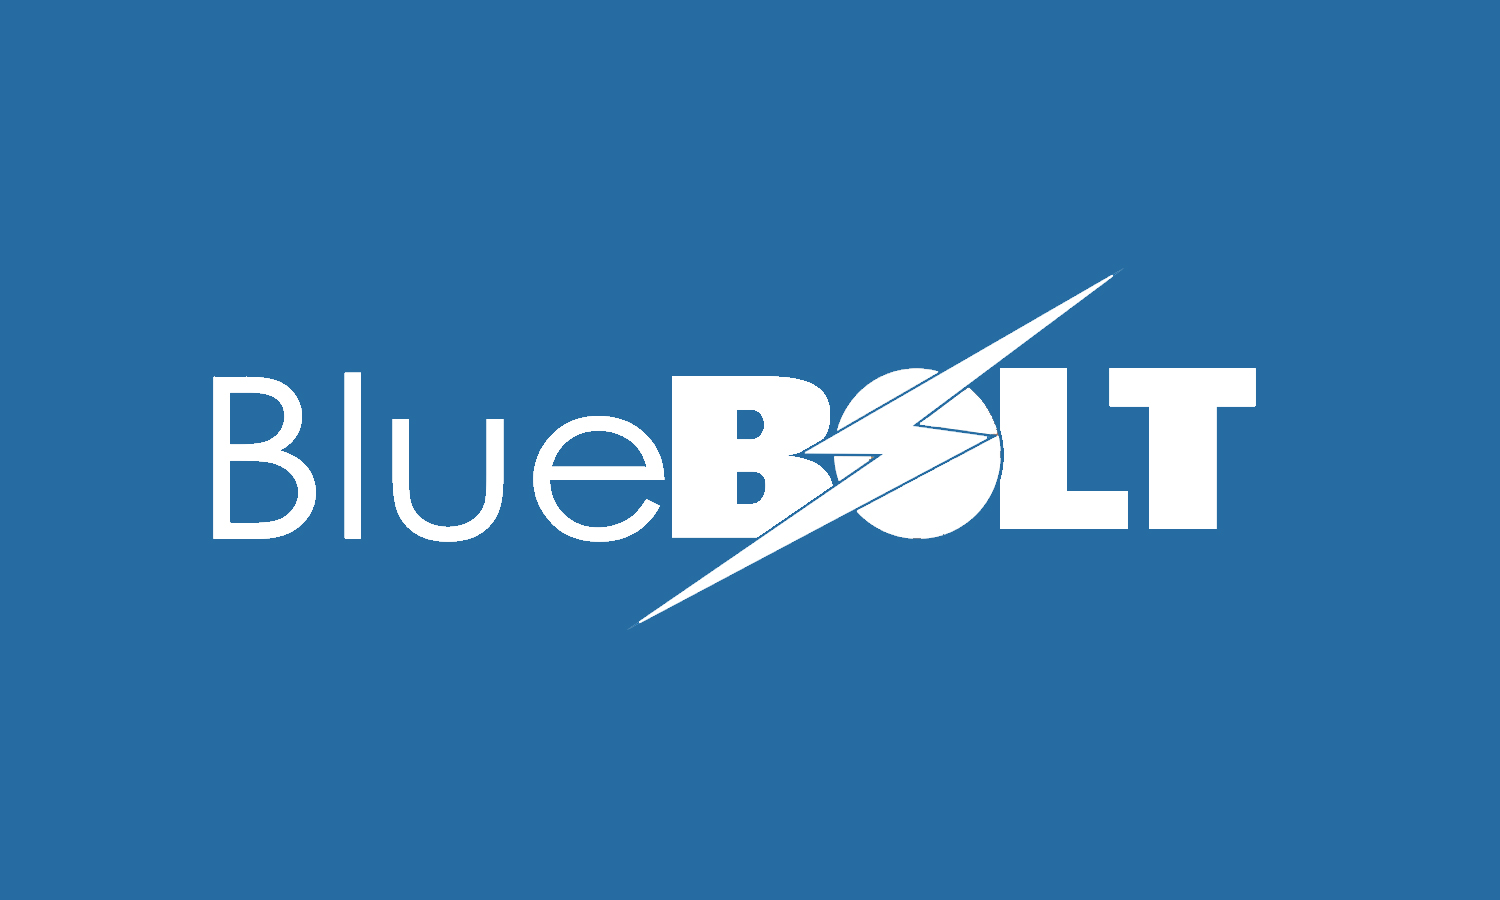 Blue Bolt Logo